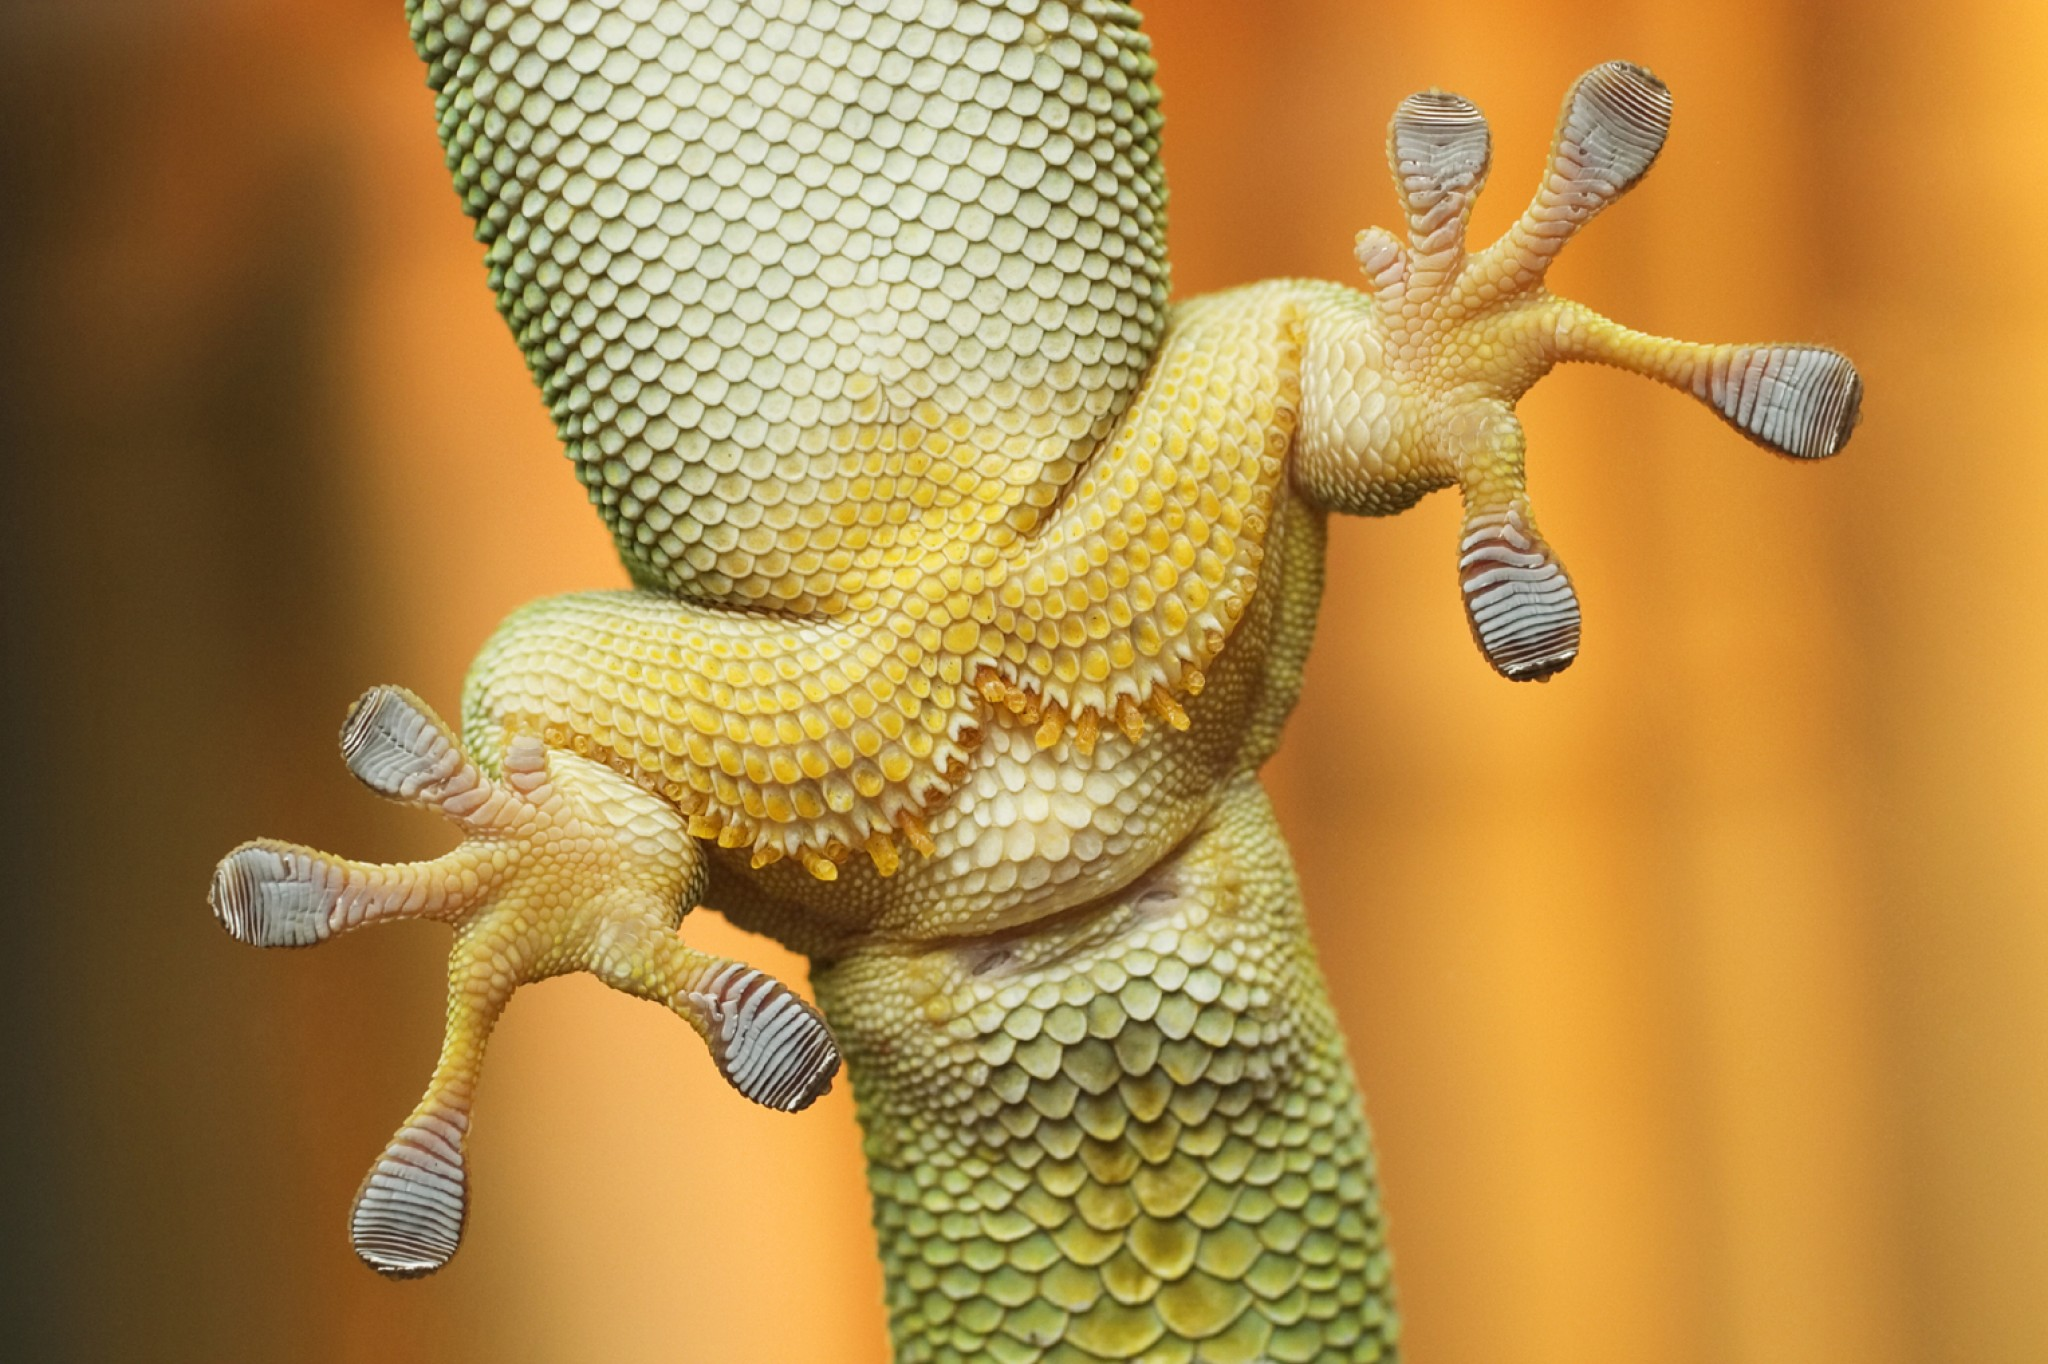 nanoscale adhesive inspired by the gecko essay The future of nanotechnology design and teachnology | see more ideas about architecture, environment and evolution.